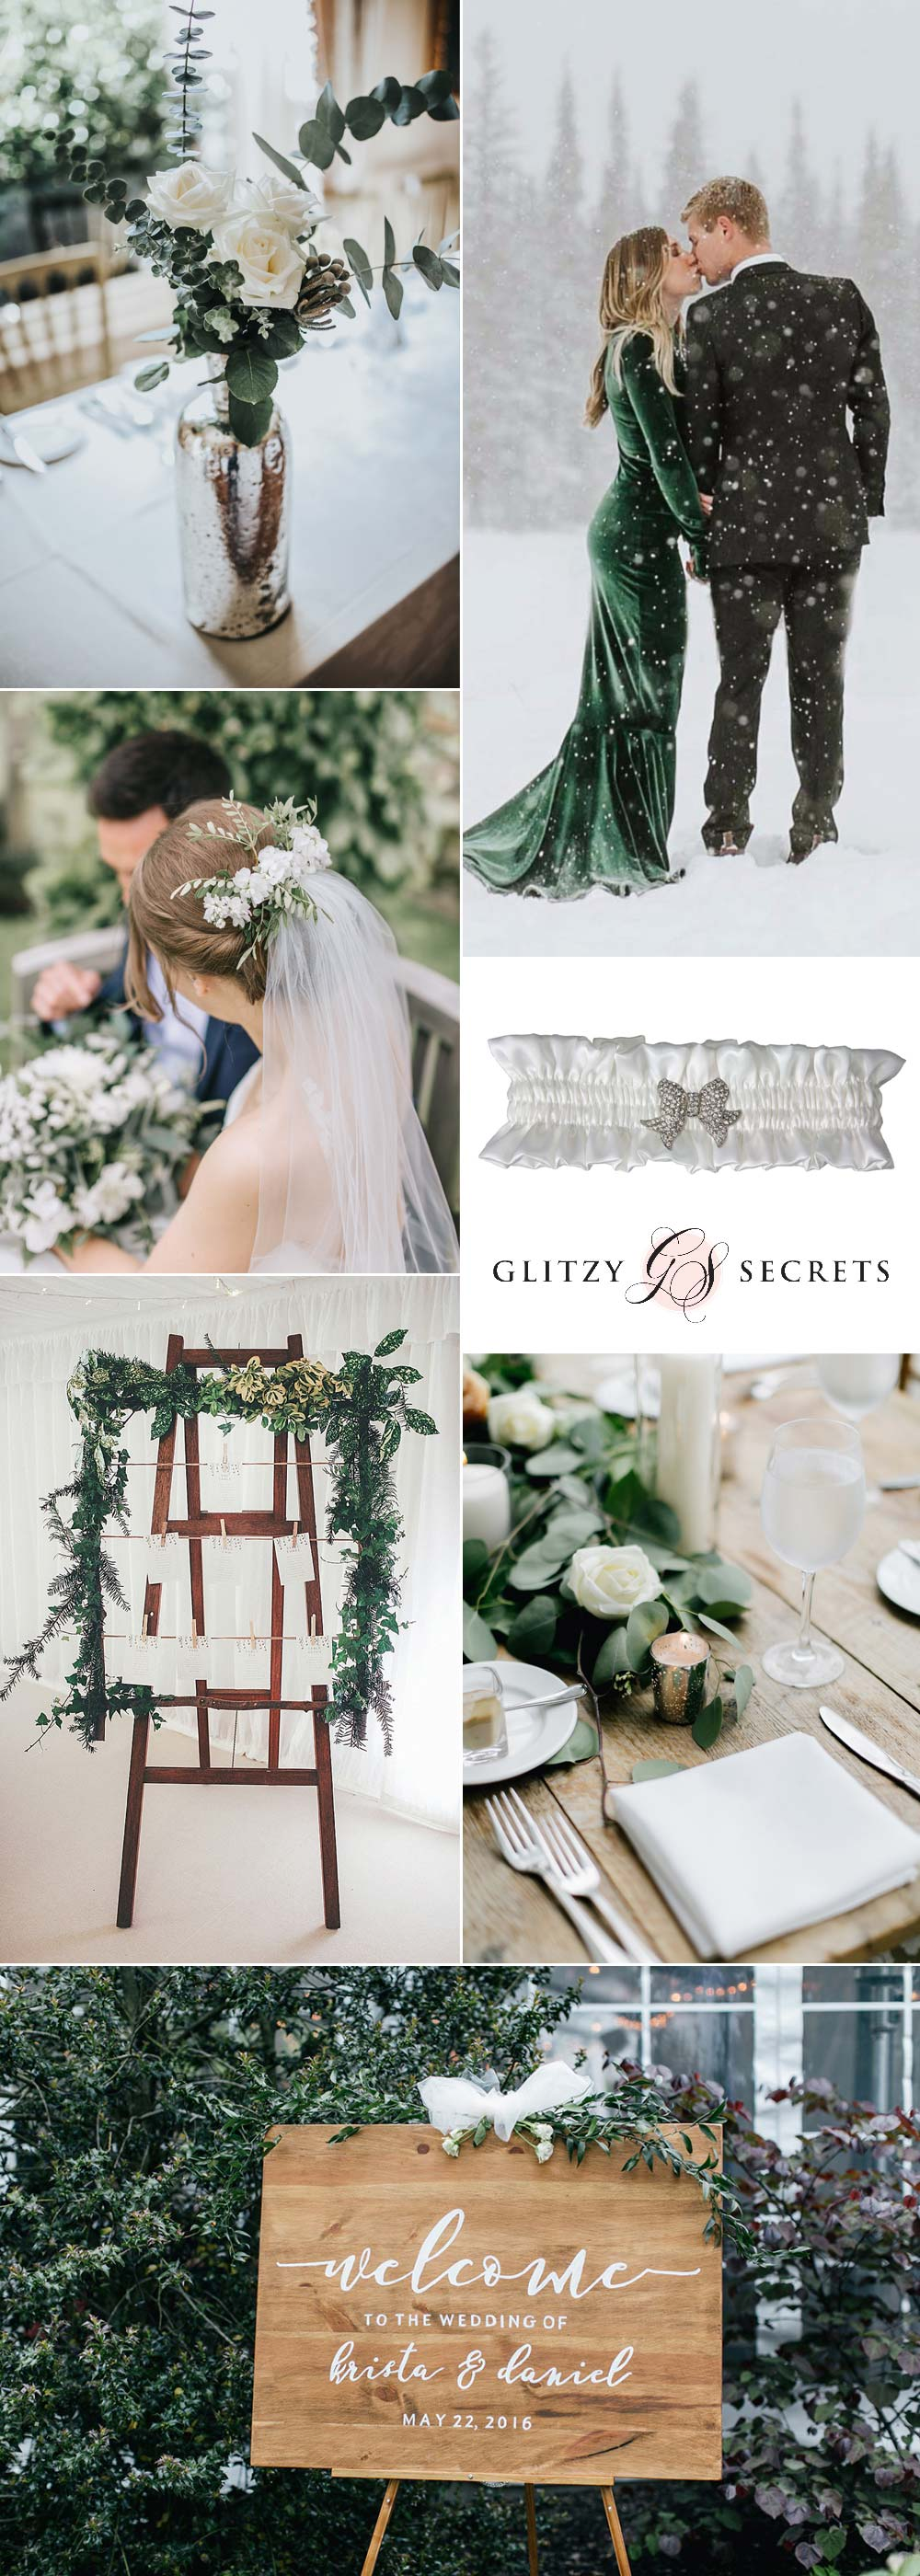 Ideas for a winter wedding green and white colour scheme